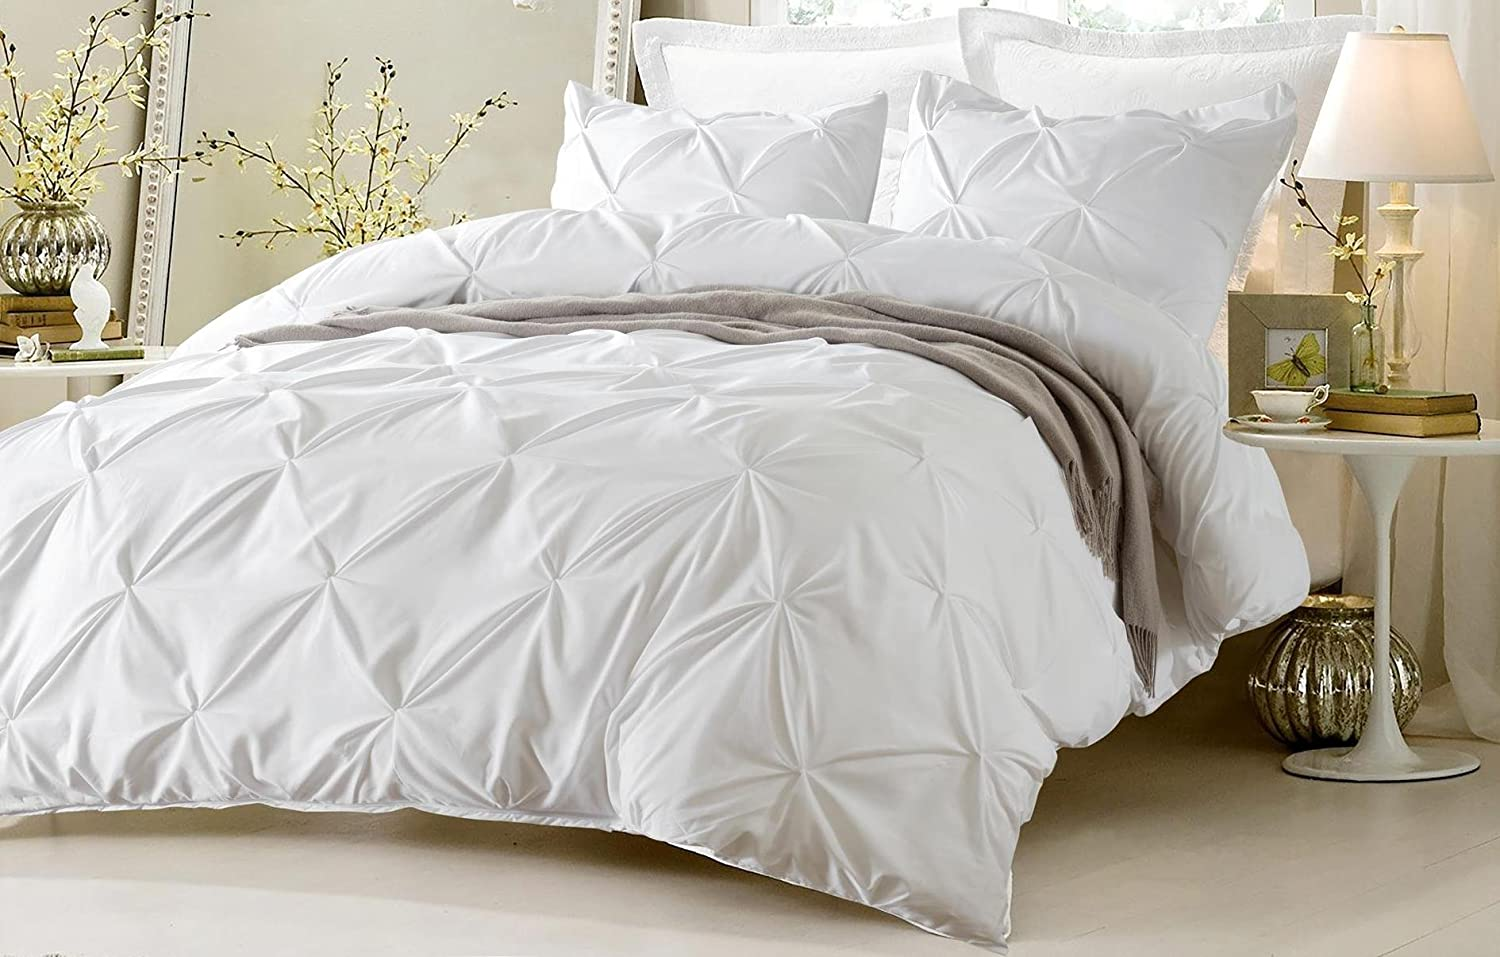 cotton full count piece by dp set royal kitchen white duvet amazon thread com hotel bedding cover embroidered athena comforter home king queen